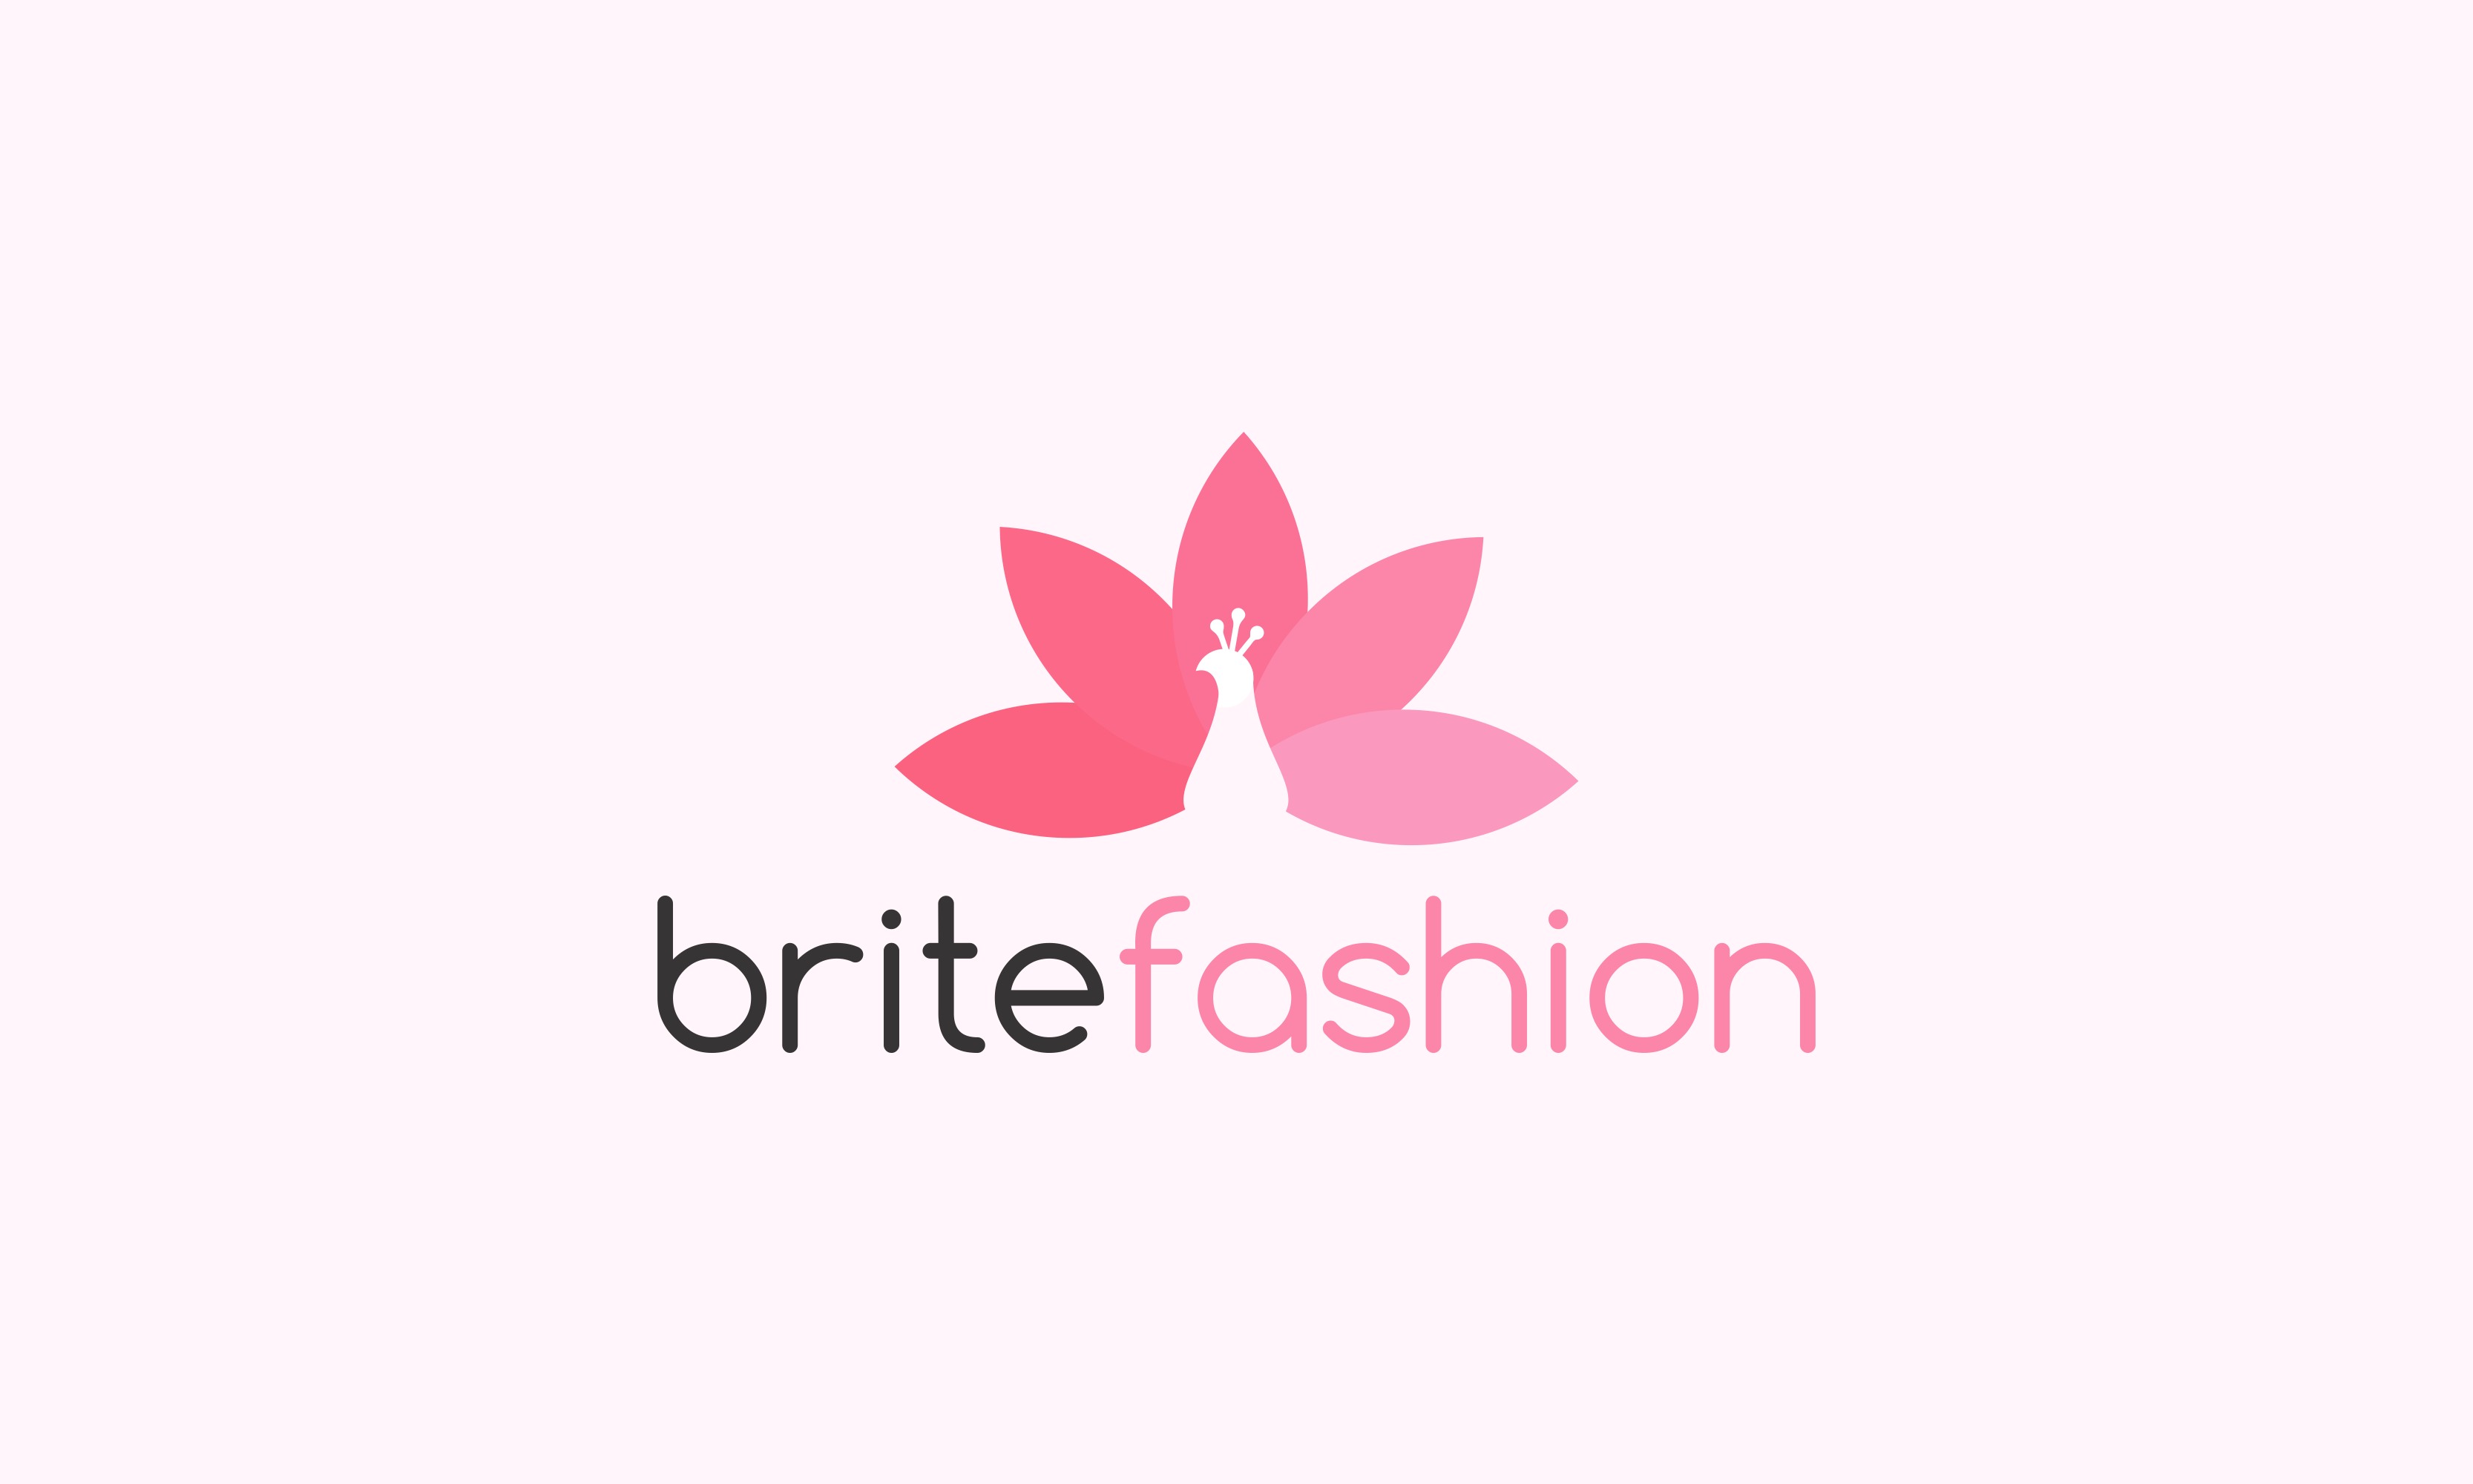 BriteFashion